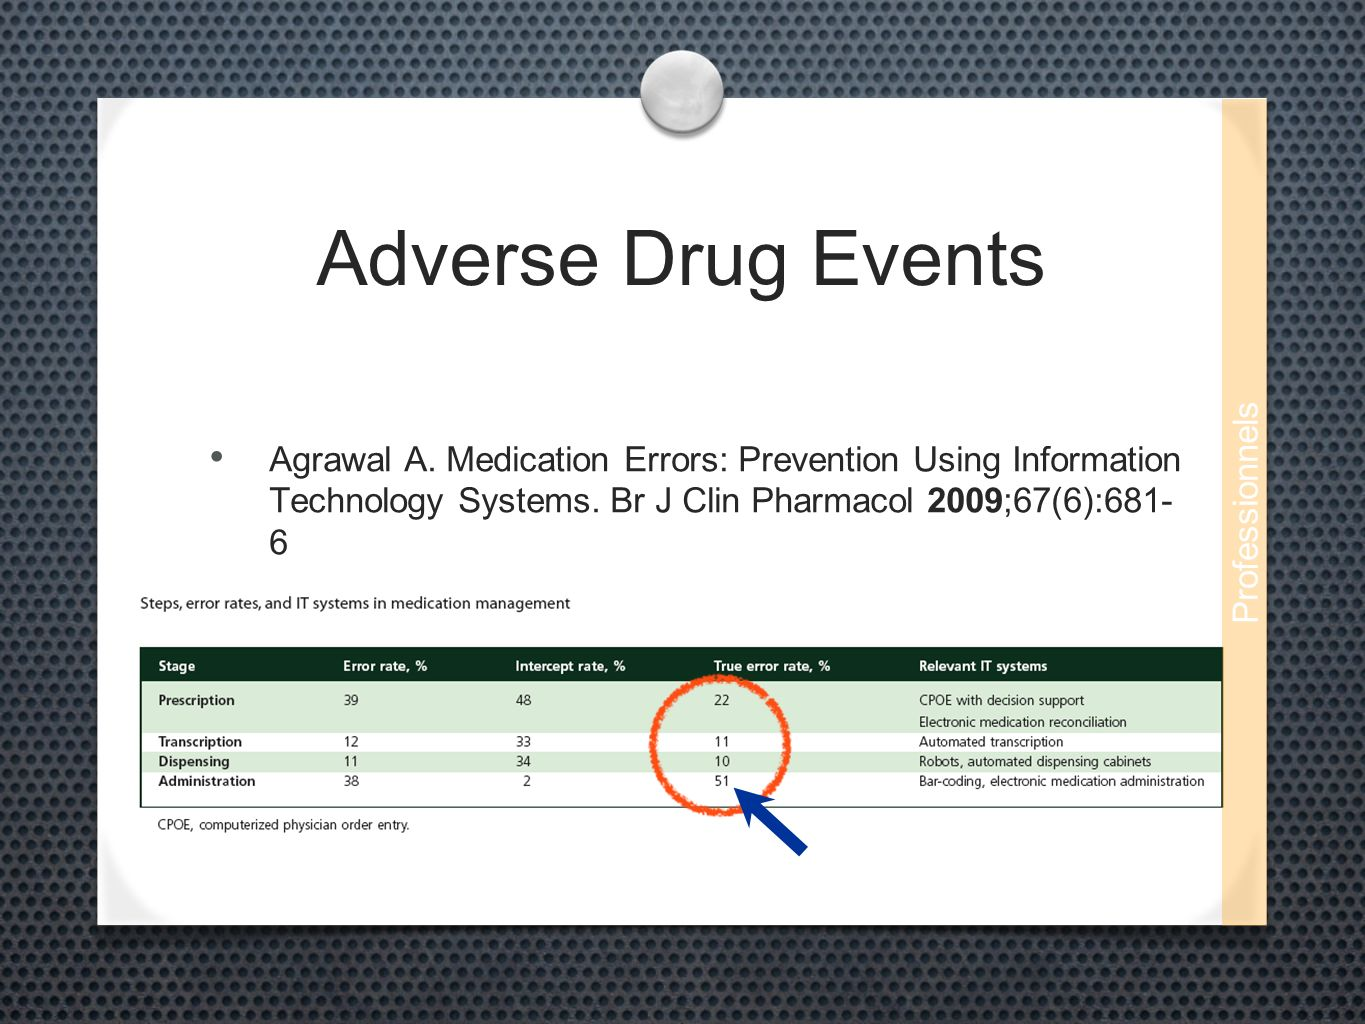 Adverse Drug Events Agrawal A. Medication Errors: Prevention Using Information Technology Systems. Br J Clin Pharmacol 2009;67(6):681- 6 Professionnel